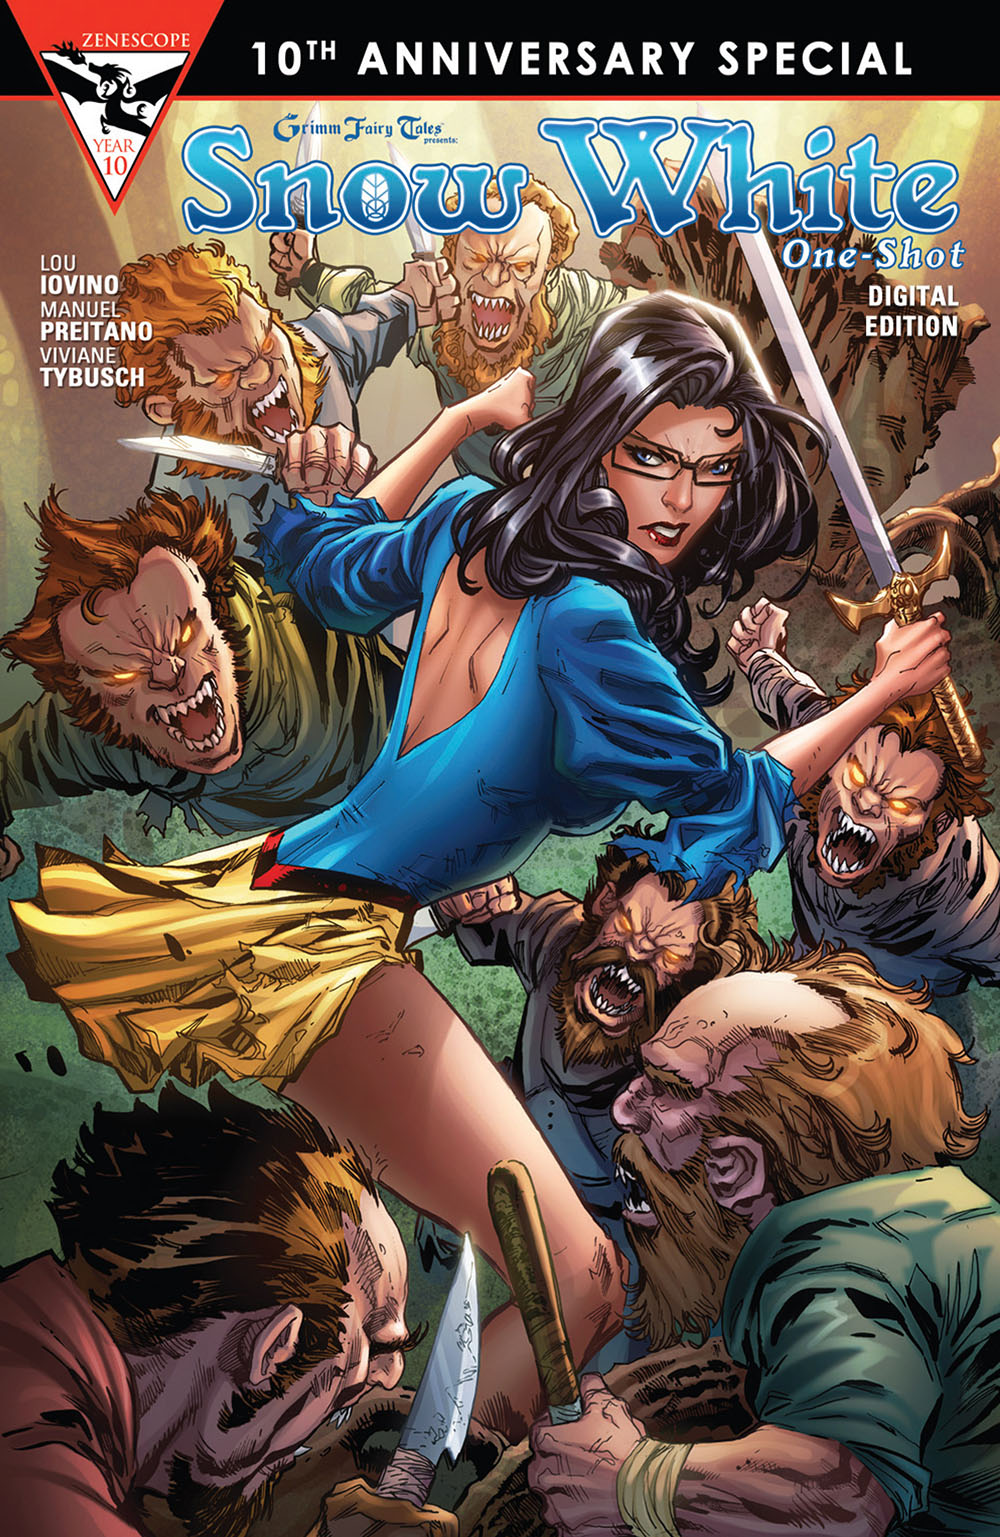 Uncategorized Online Fairy Tales grimm fairy tales presents 10th anniversary viewcomic reading special 001 2015